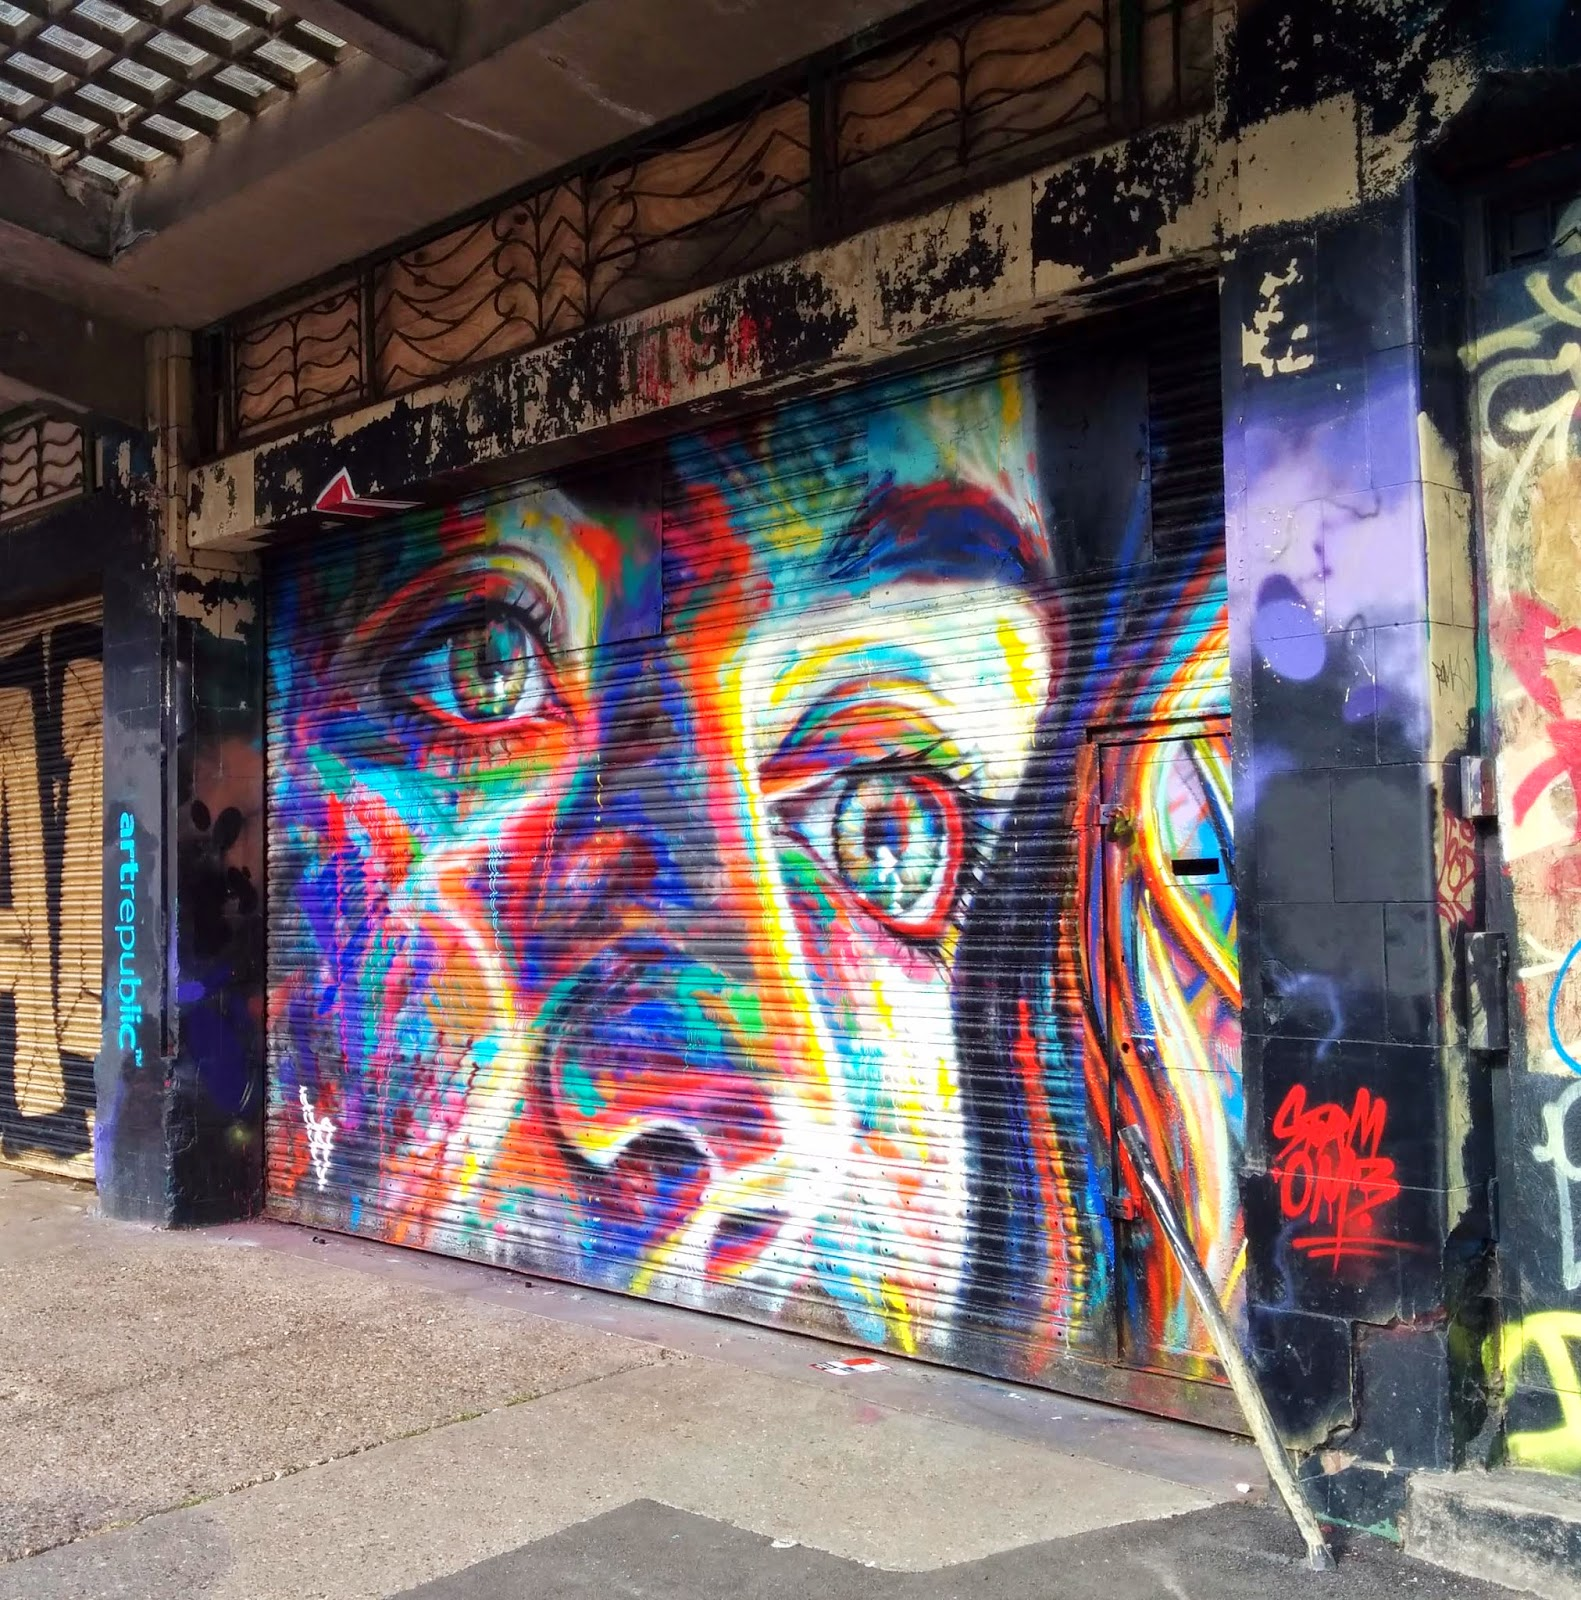 After Shoreditch, London (covered), David Walker stopped by Brighton to paint for the Urban ArtFest 2014 organised by Artrepublic with Brighton Fringe.